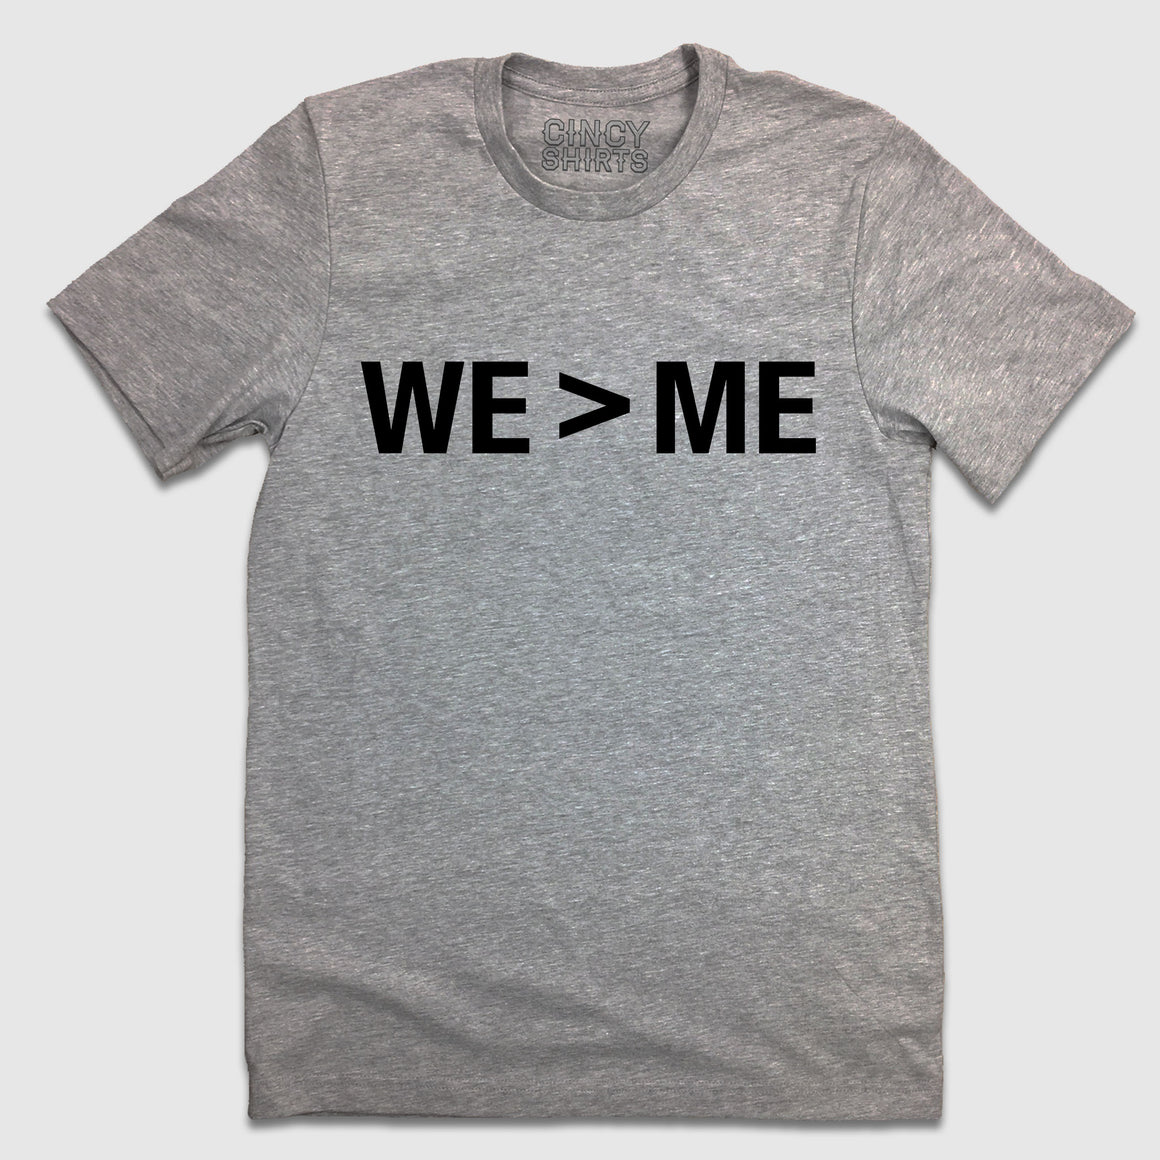 We > Me - Cincy Shirts